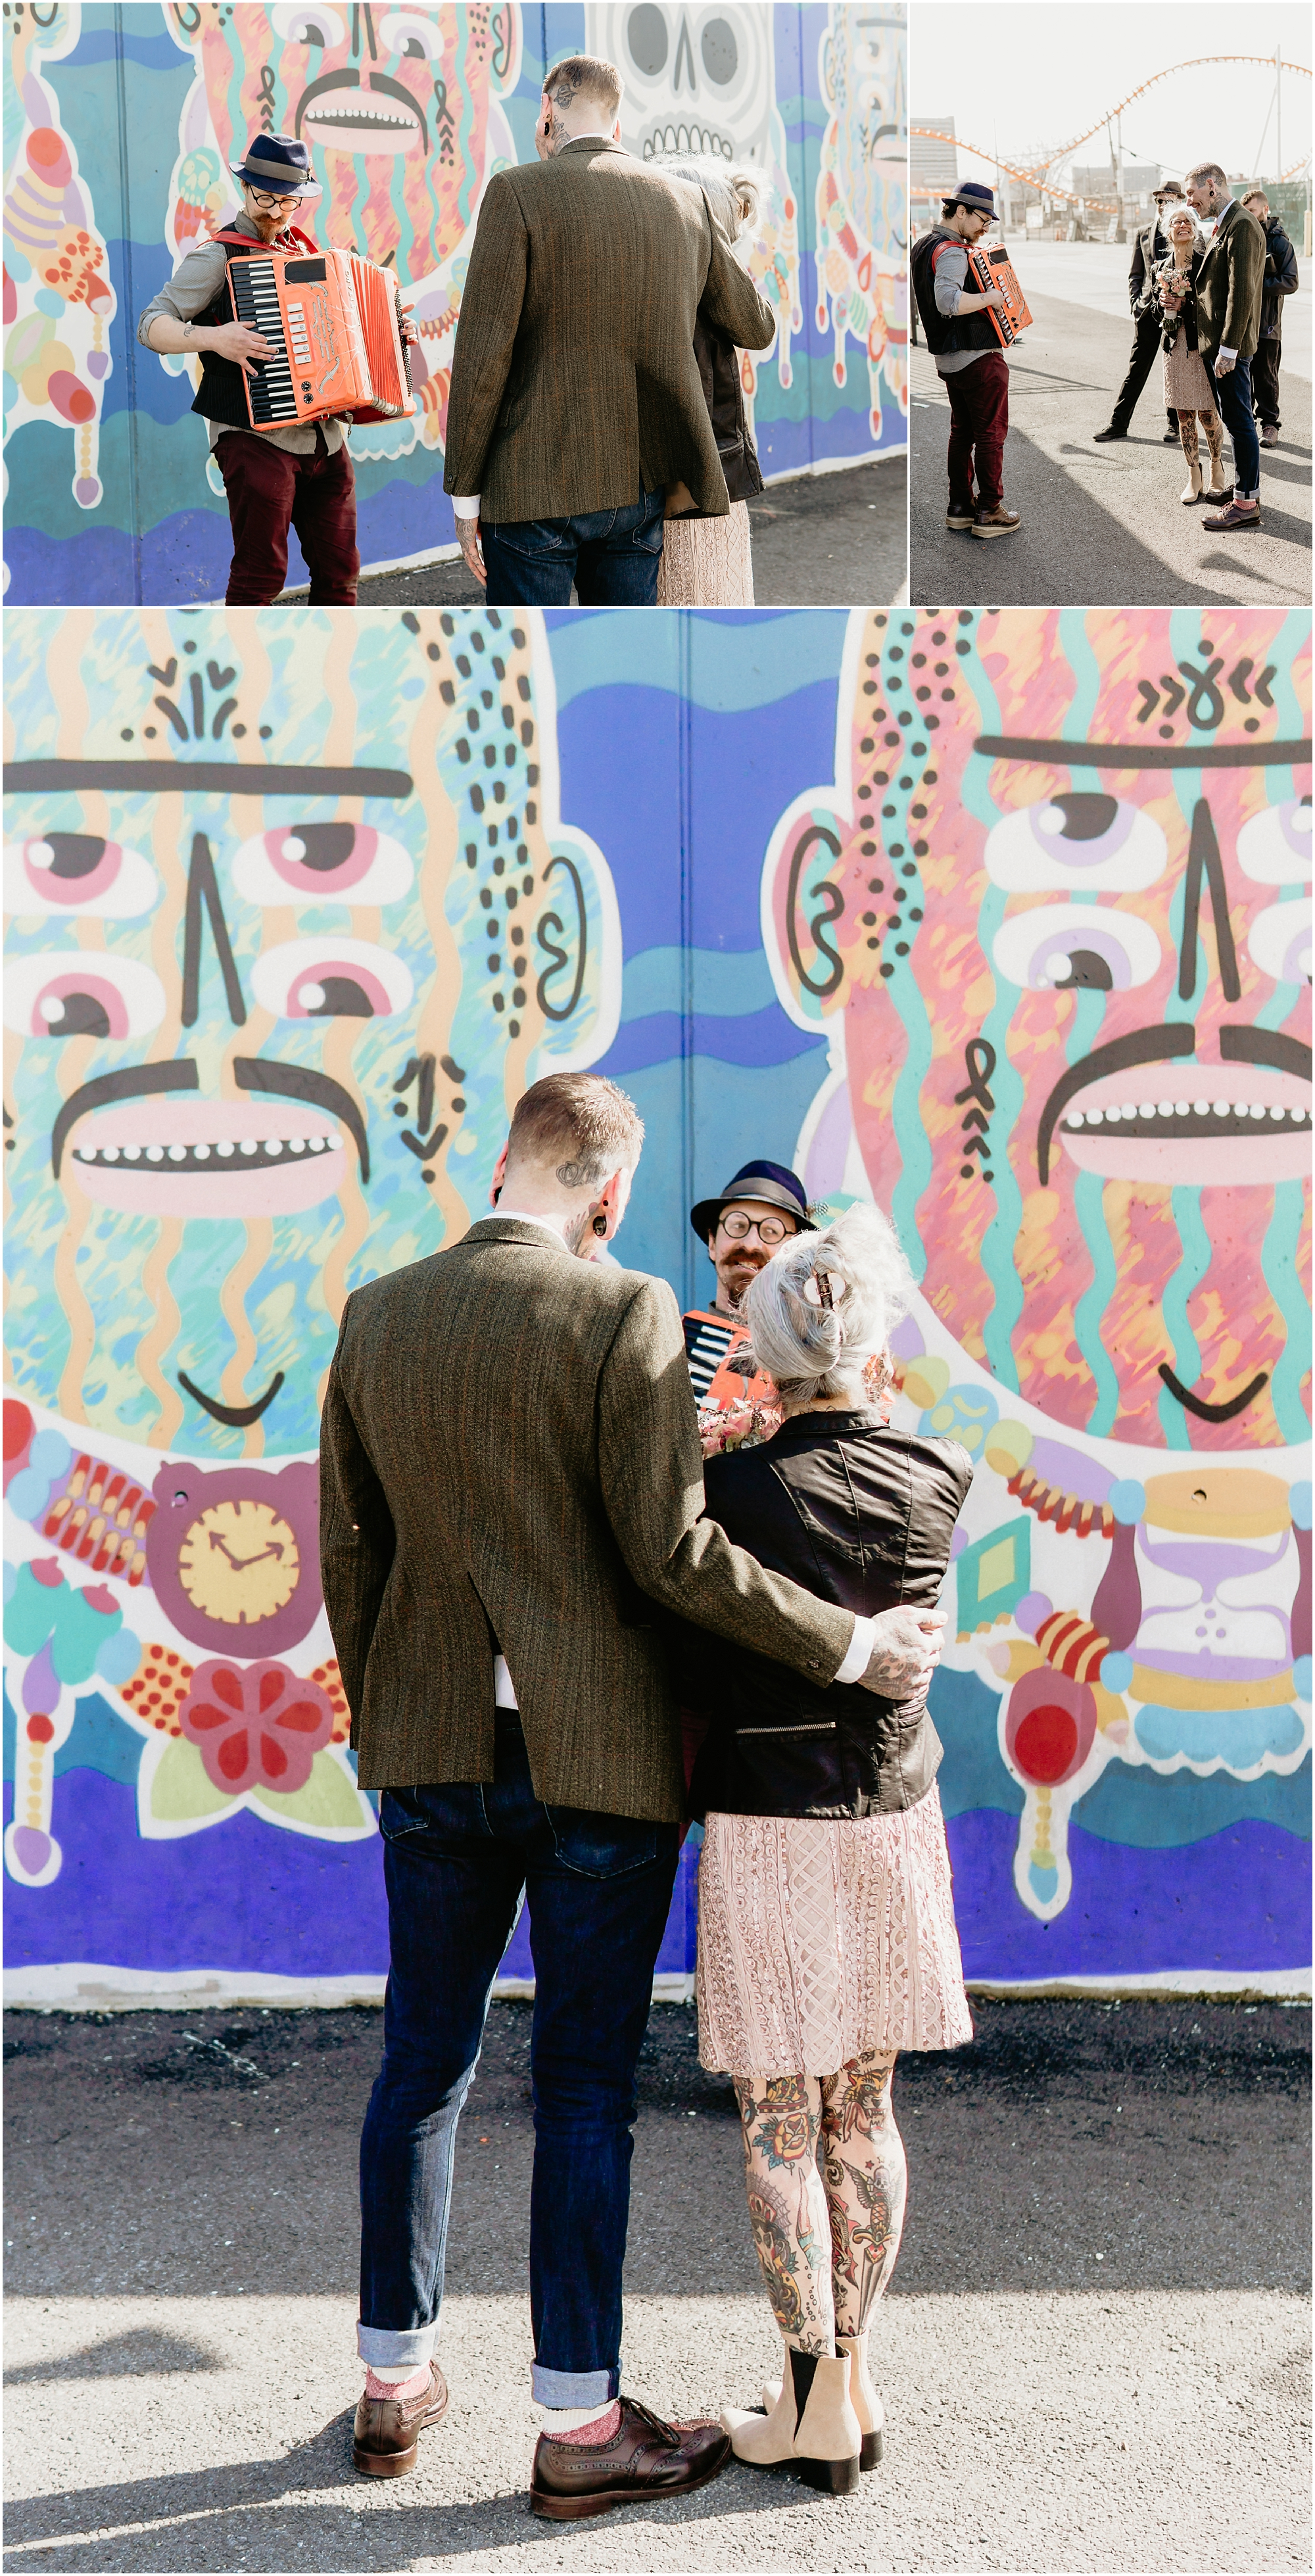 Lisa&Dan_Coney_Island_NYC_Elopement_Jeanette Joy Photography_April 2018_0031.jpg